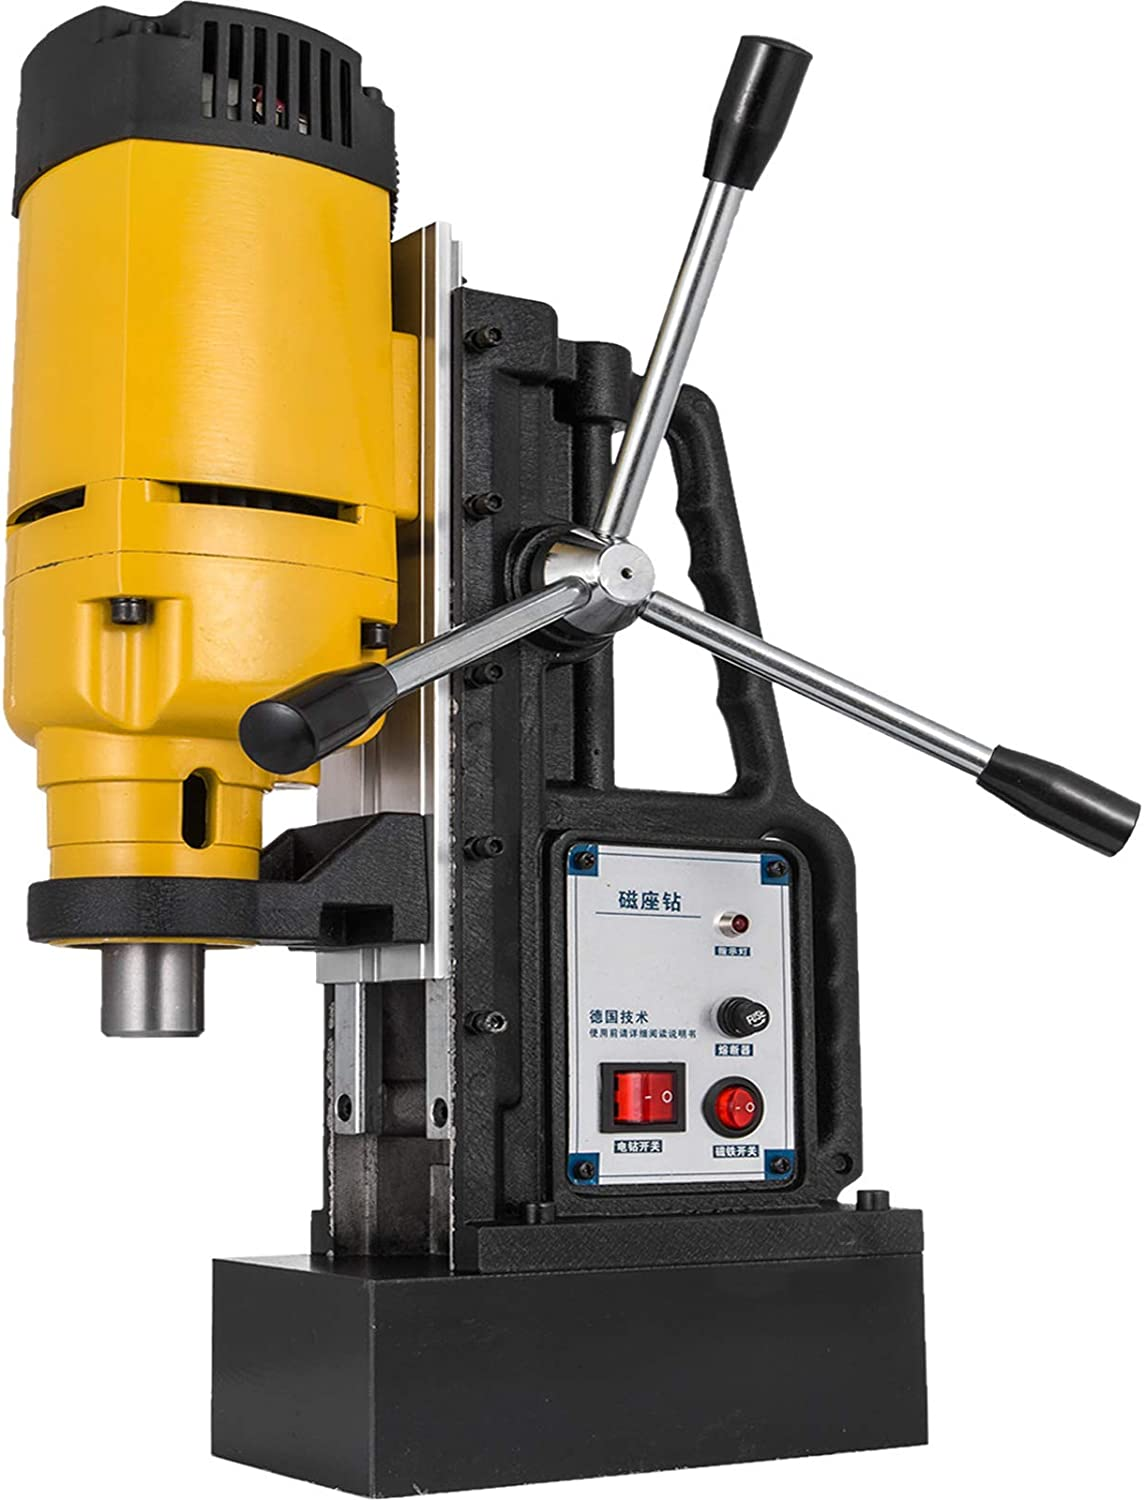 Best Magnetic Drill Press: Mophorn 1200W Magnetic Drill Press